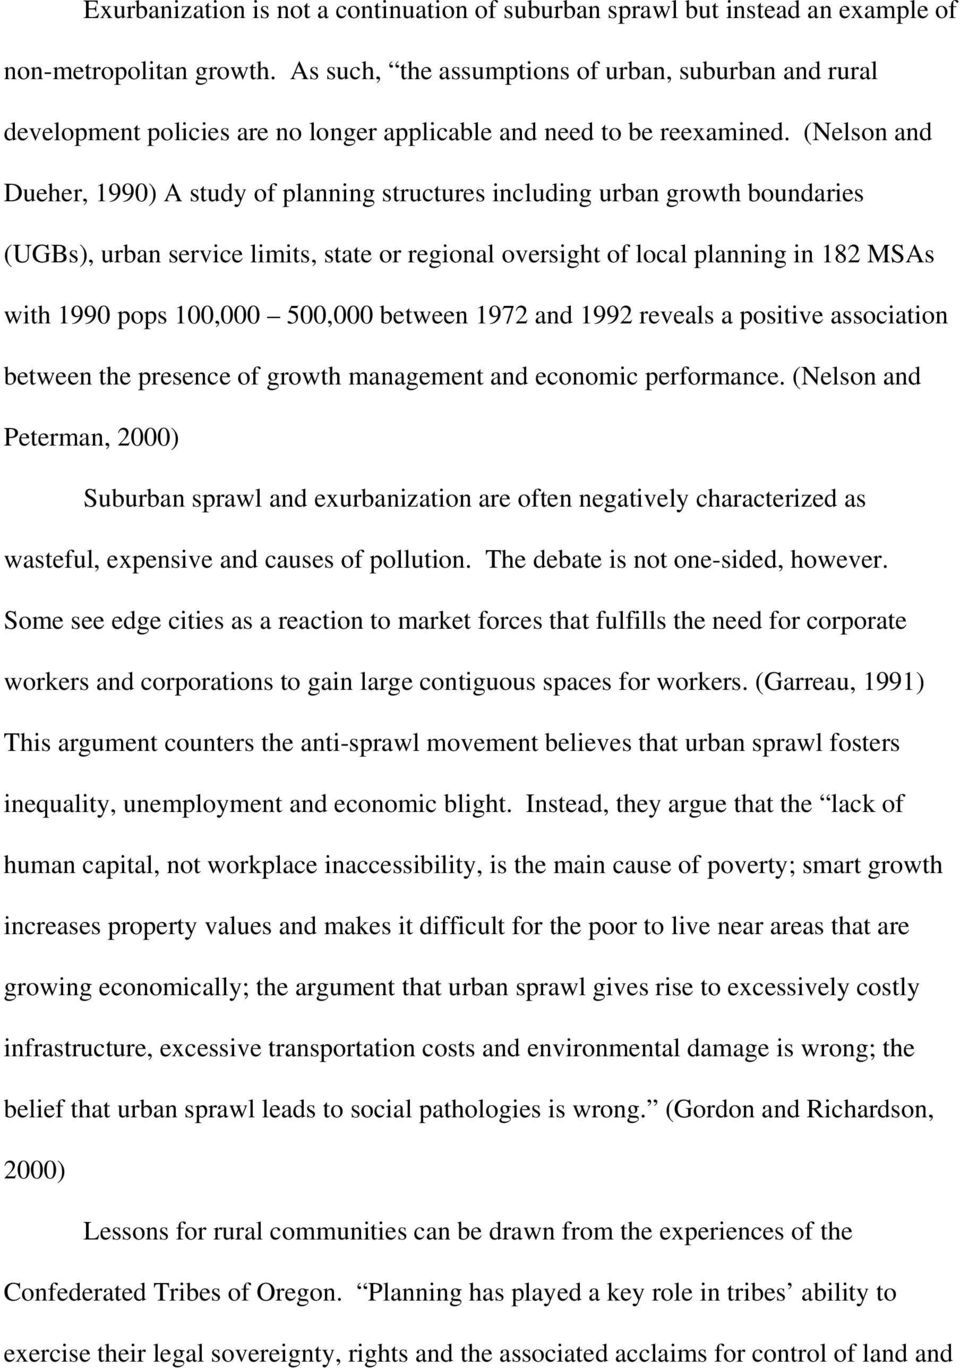 (Nelson and Dueher, 1990) A study of planning structures including urban growth boundaries (UGBs), urban service limits, state or regional oversight of local planning in 182 MSAs with 1990 pops